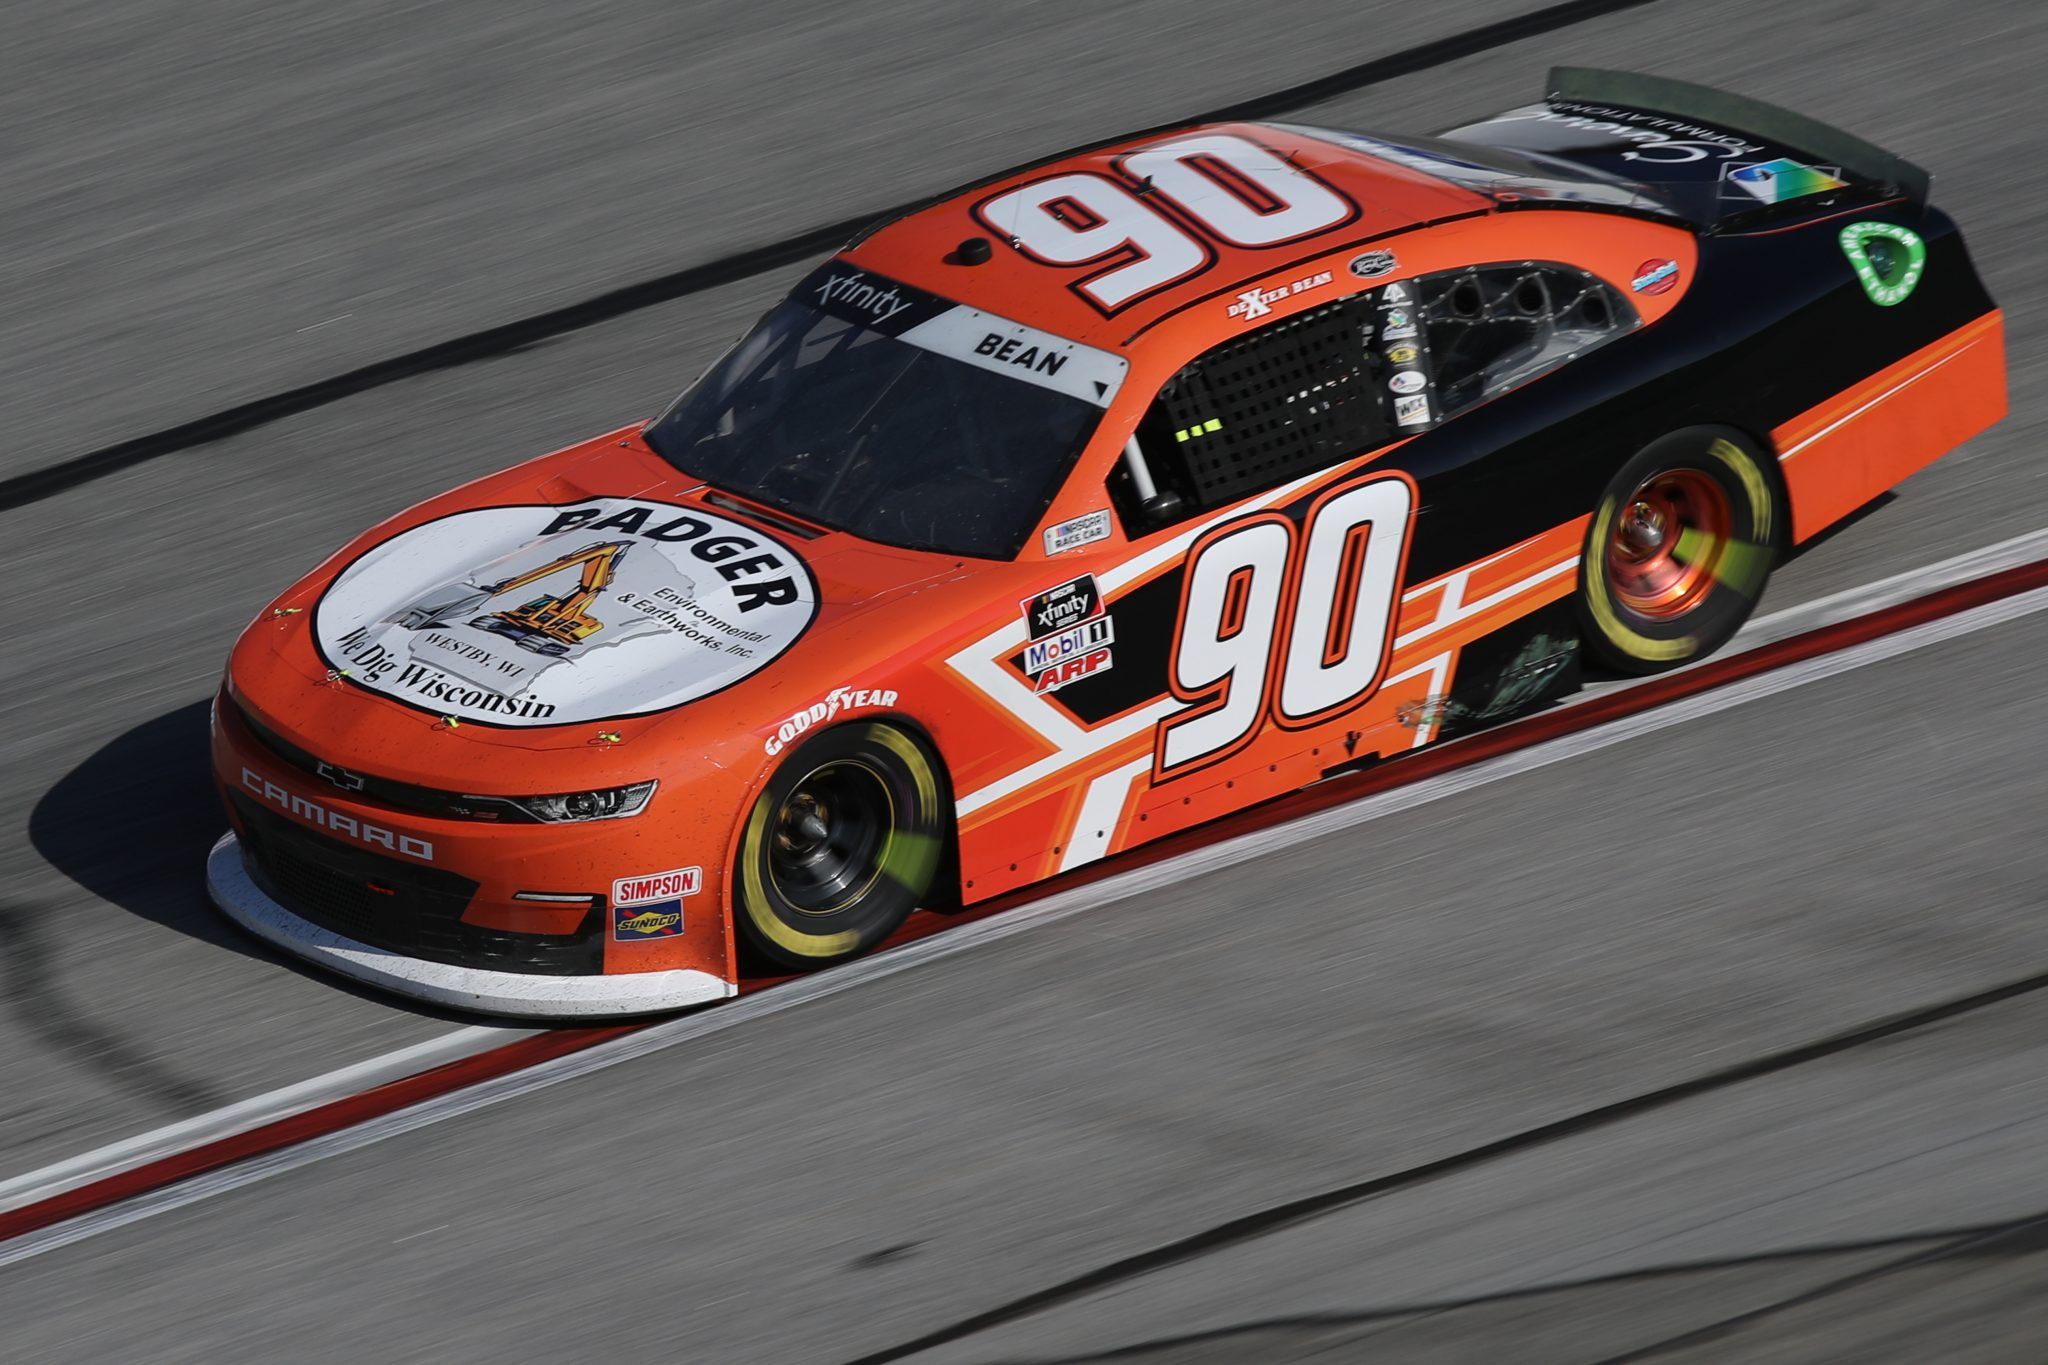 HAMPTON, GEORGIA - MARCH 20: Dexter Bean, driver of the #90 Badger Environmental Chevrolet, drives during the NASCAR Xfinity Series EchoPark 250 at Atlanta Motor Speedway on March 20, 2021 in Hampton, Georgia. (Photo by Sean Gardner/Getty Images) | Getty Images